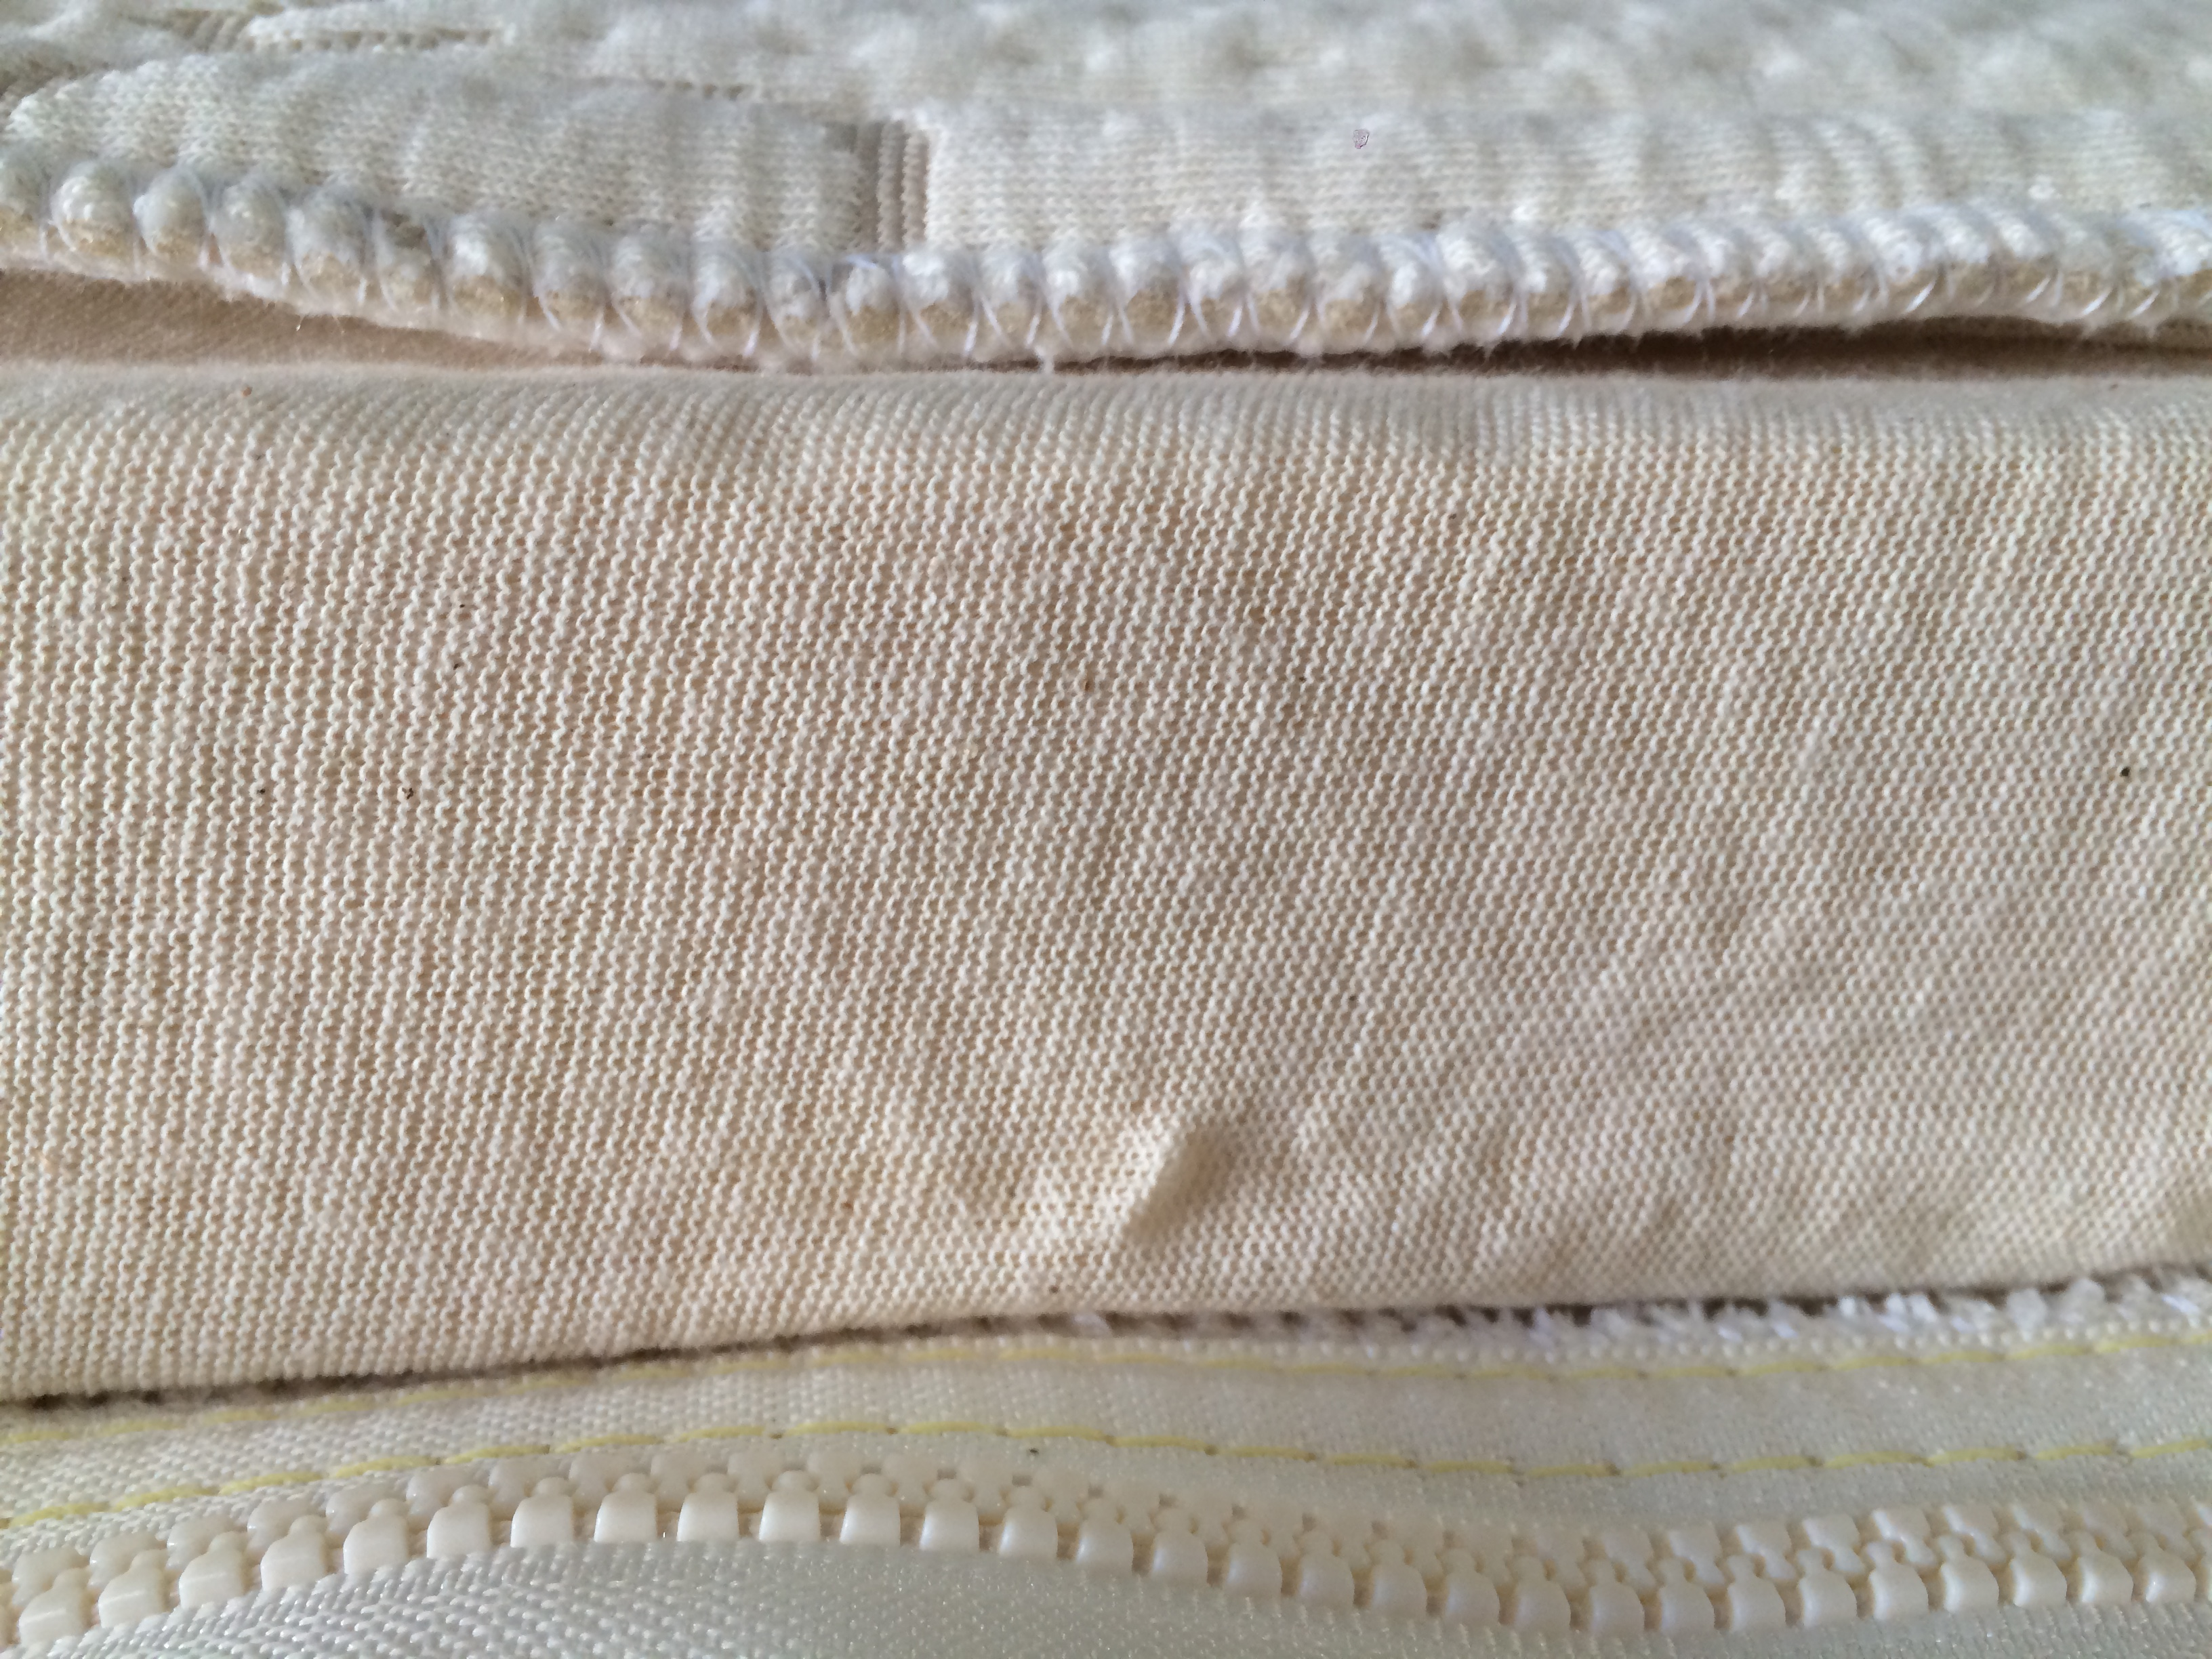 we cover each piece latex bedding piece in a certified organic cotton knit sock